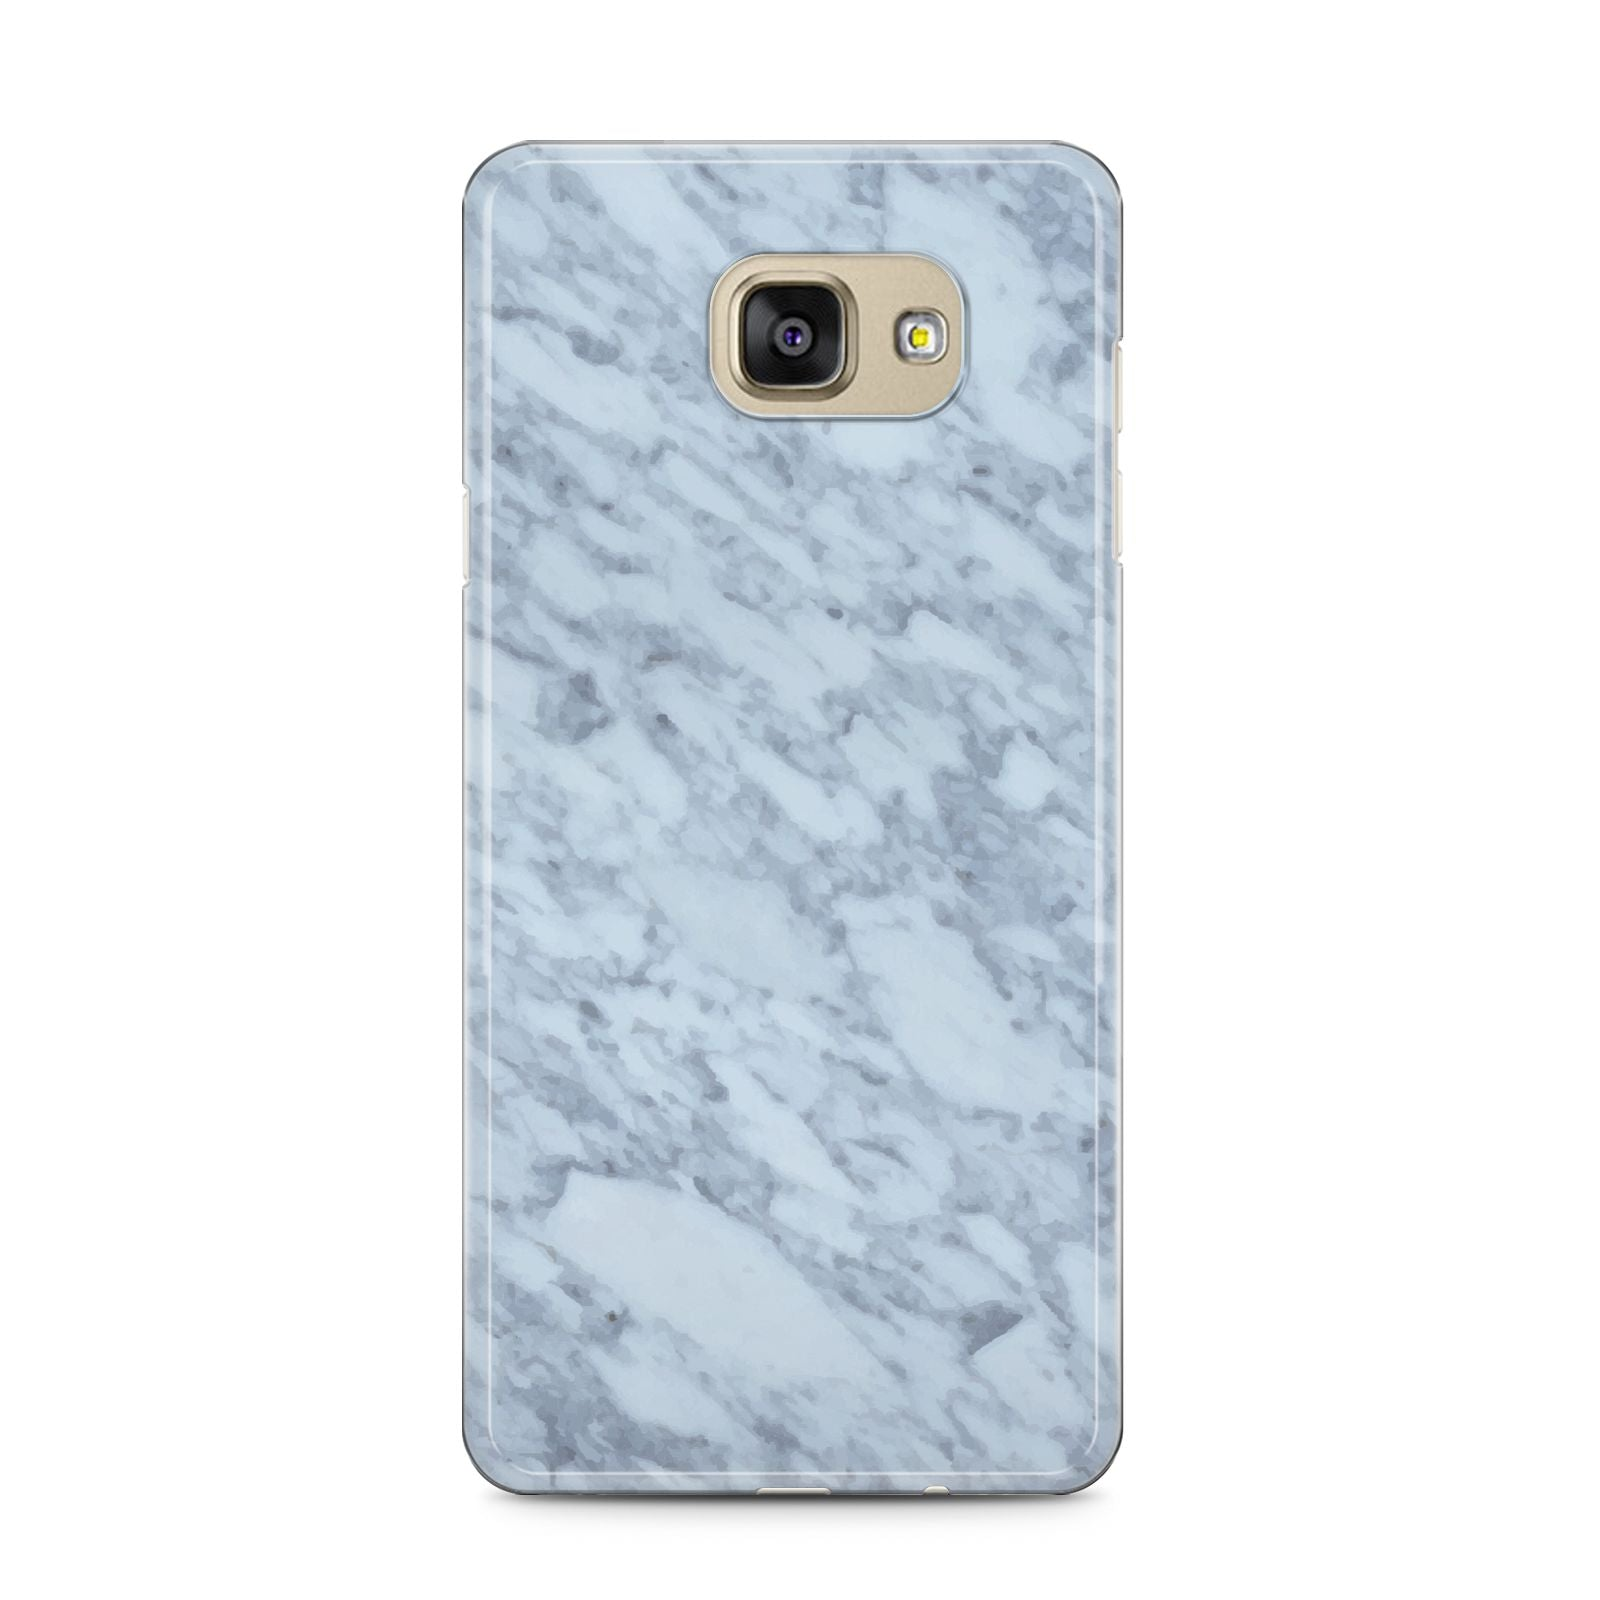 Faux Marble Grey 2 Samsung Galaxy A5 2016 Case on gold phone